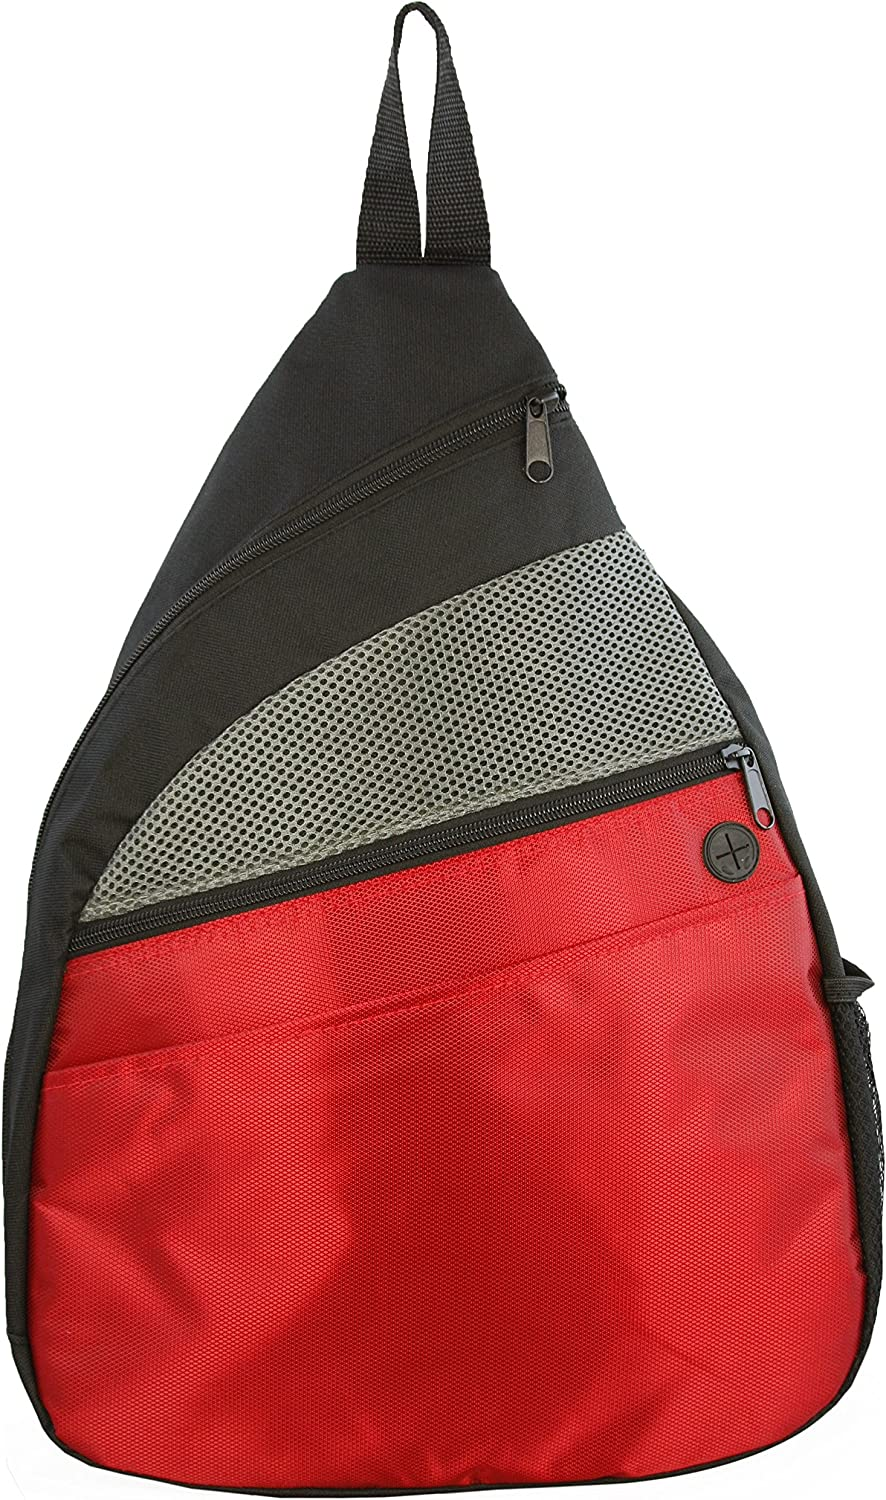 Ensign Peak Padded Tablet Sling Backpack